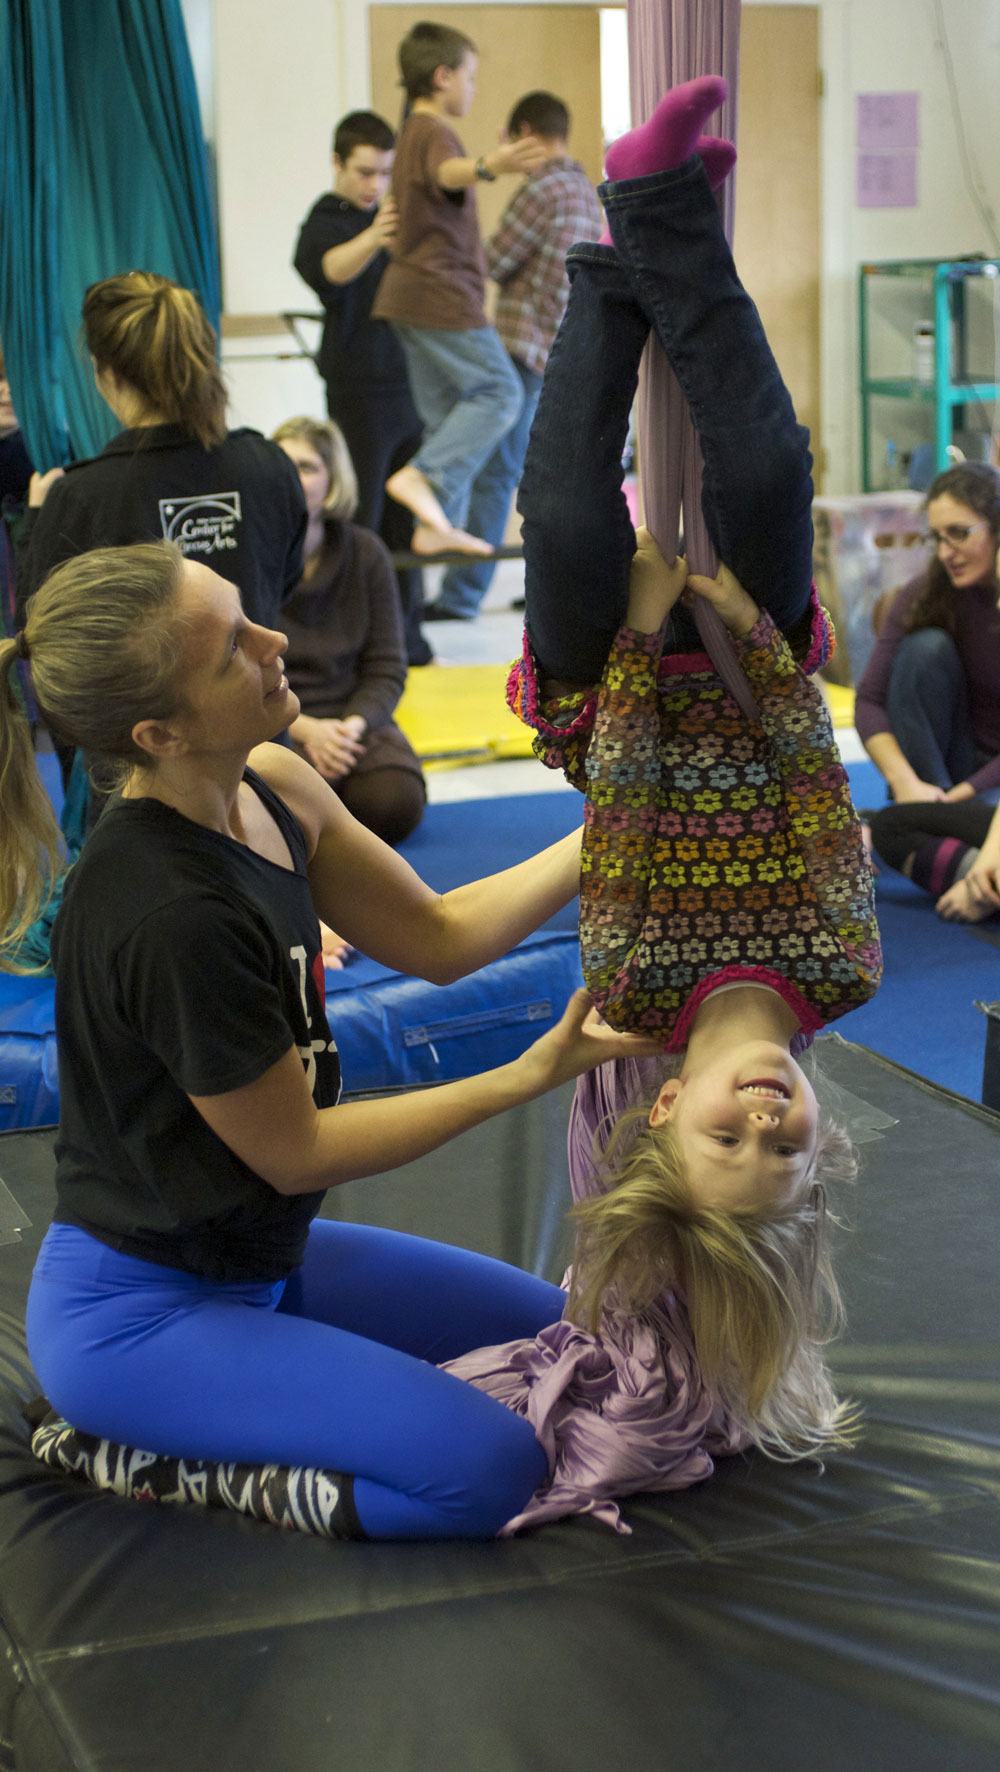 Youth program director Erin Lovett Sherman assists a young artist on the silks.